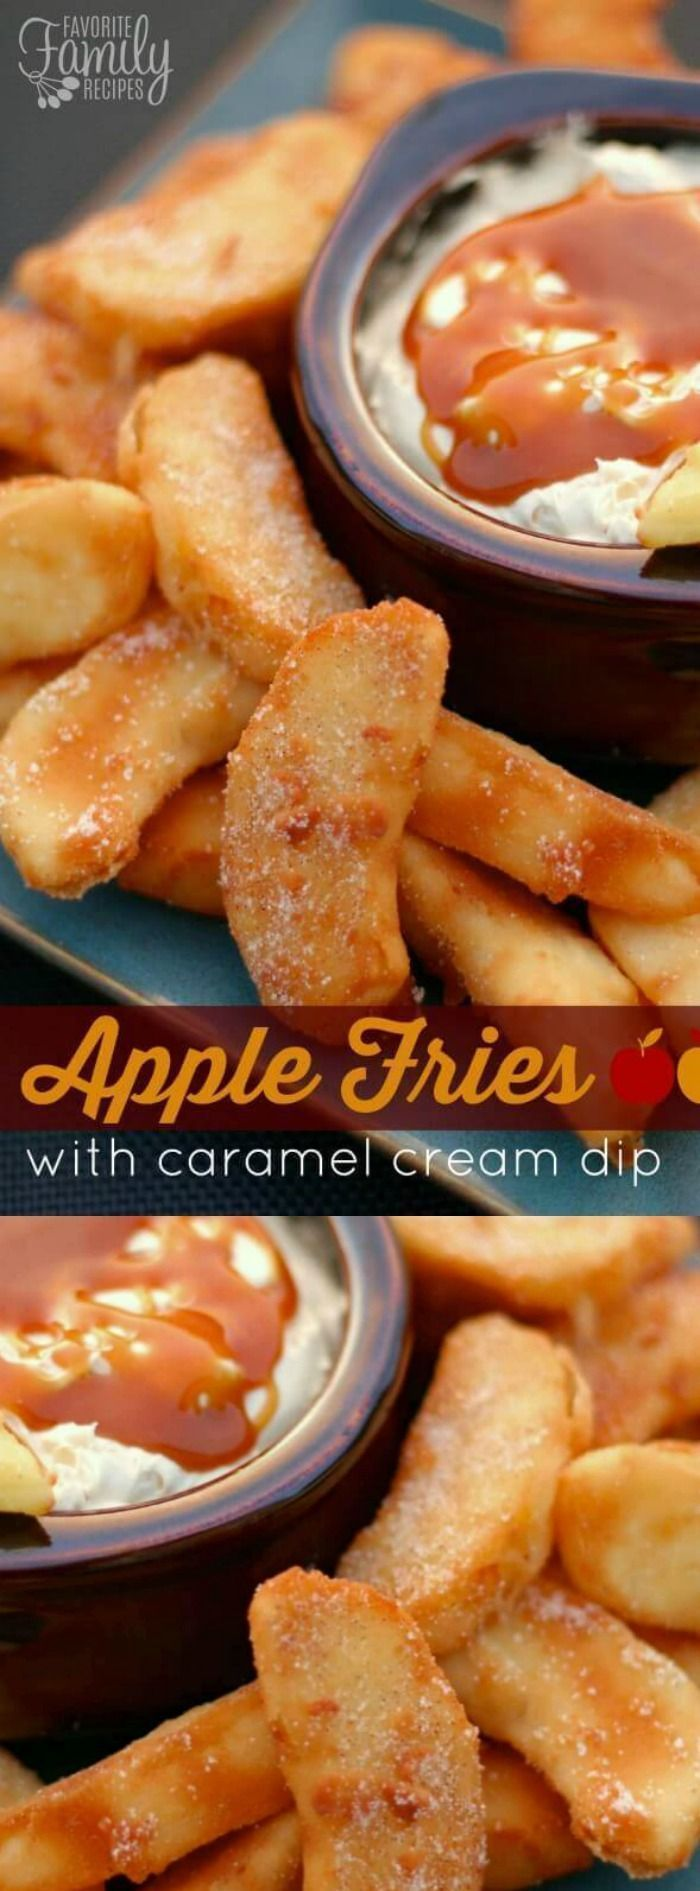 These Apple Fries with Caramel Cream Dip from Favorite Family Recipes are a…